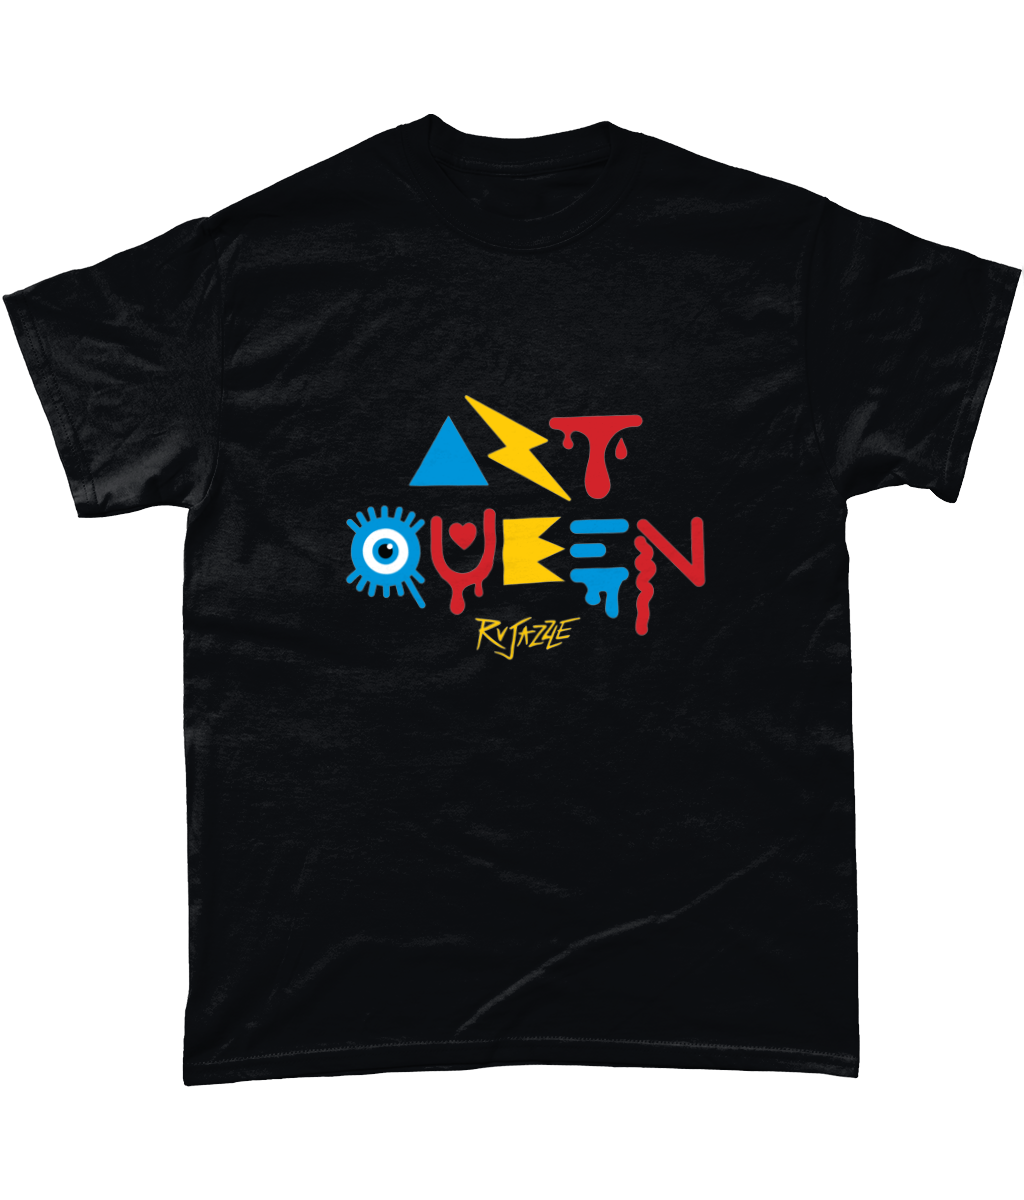 Rujazzle - Art Queen T-Shirt - SNATCHED